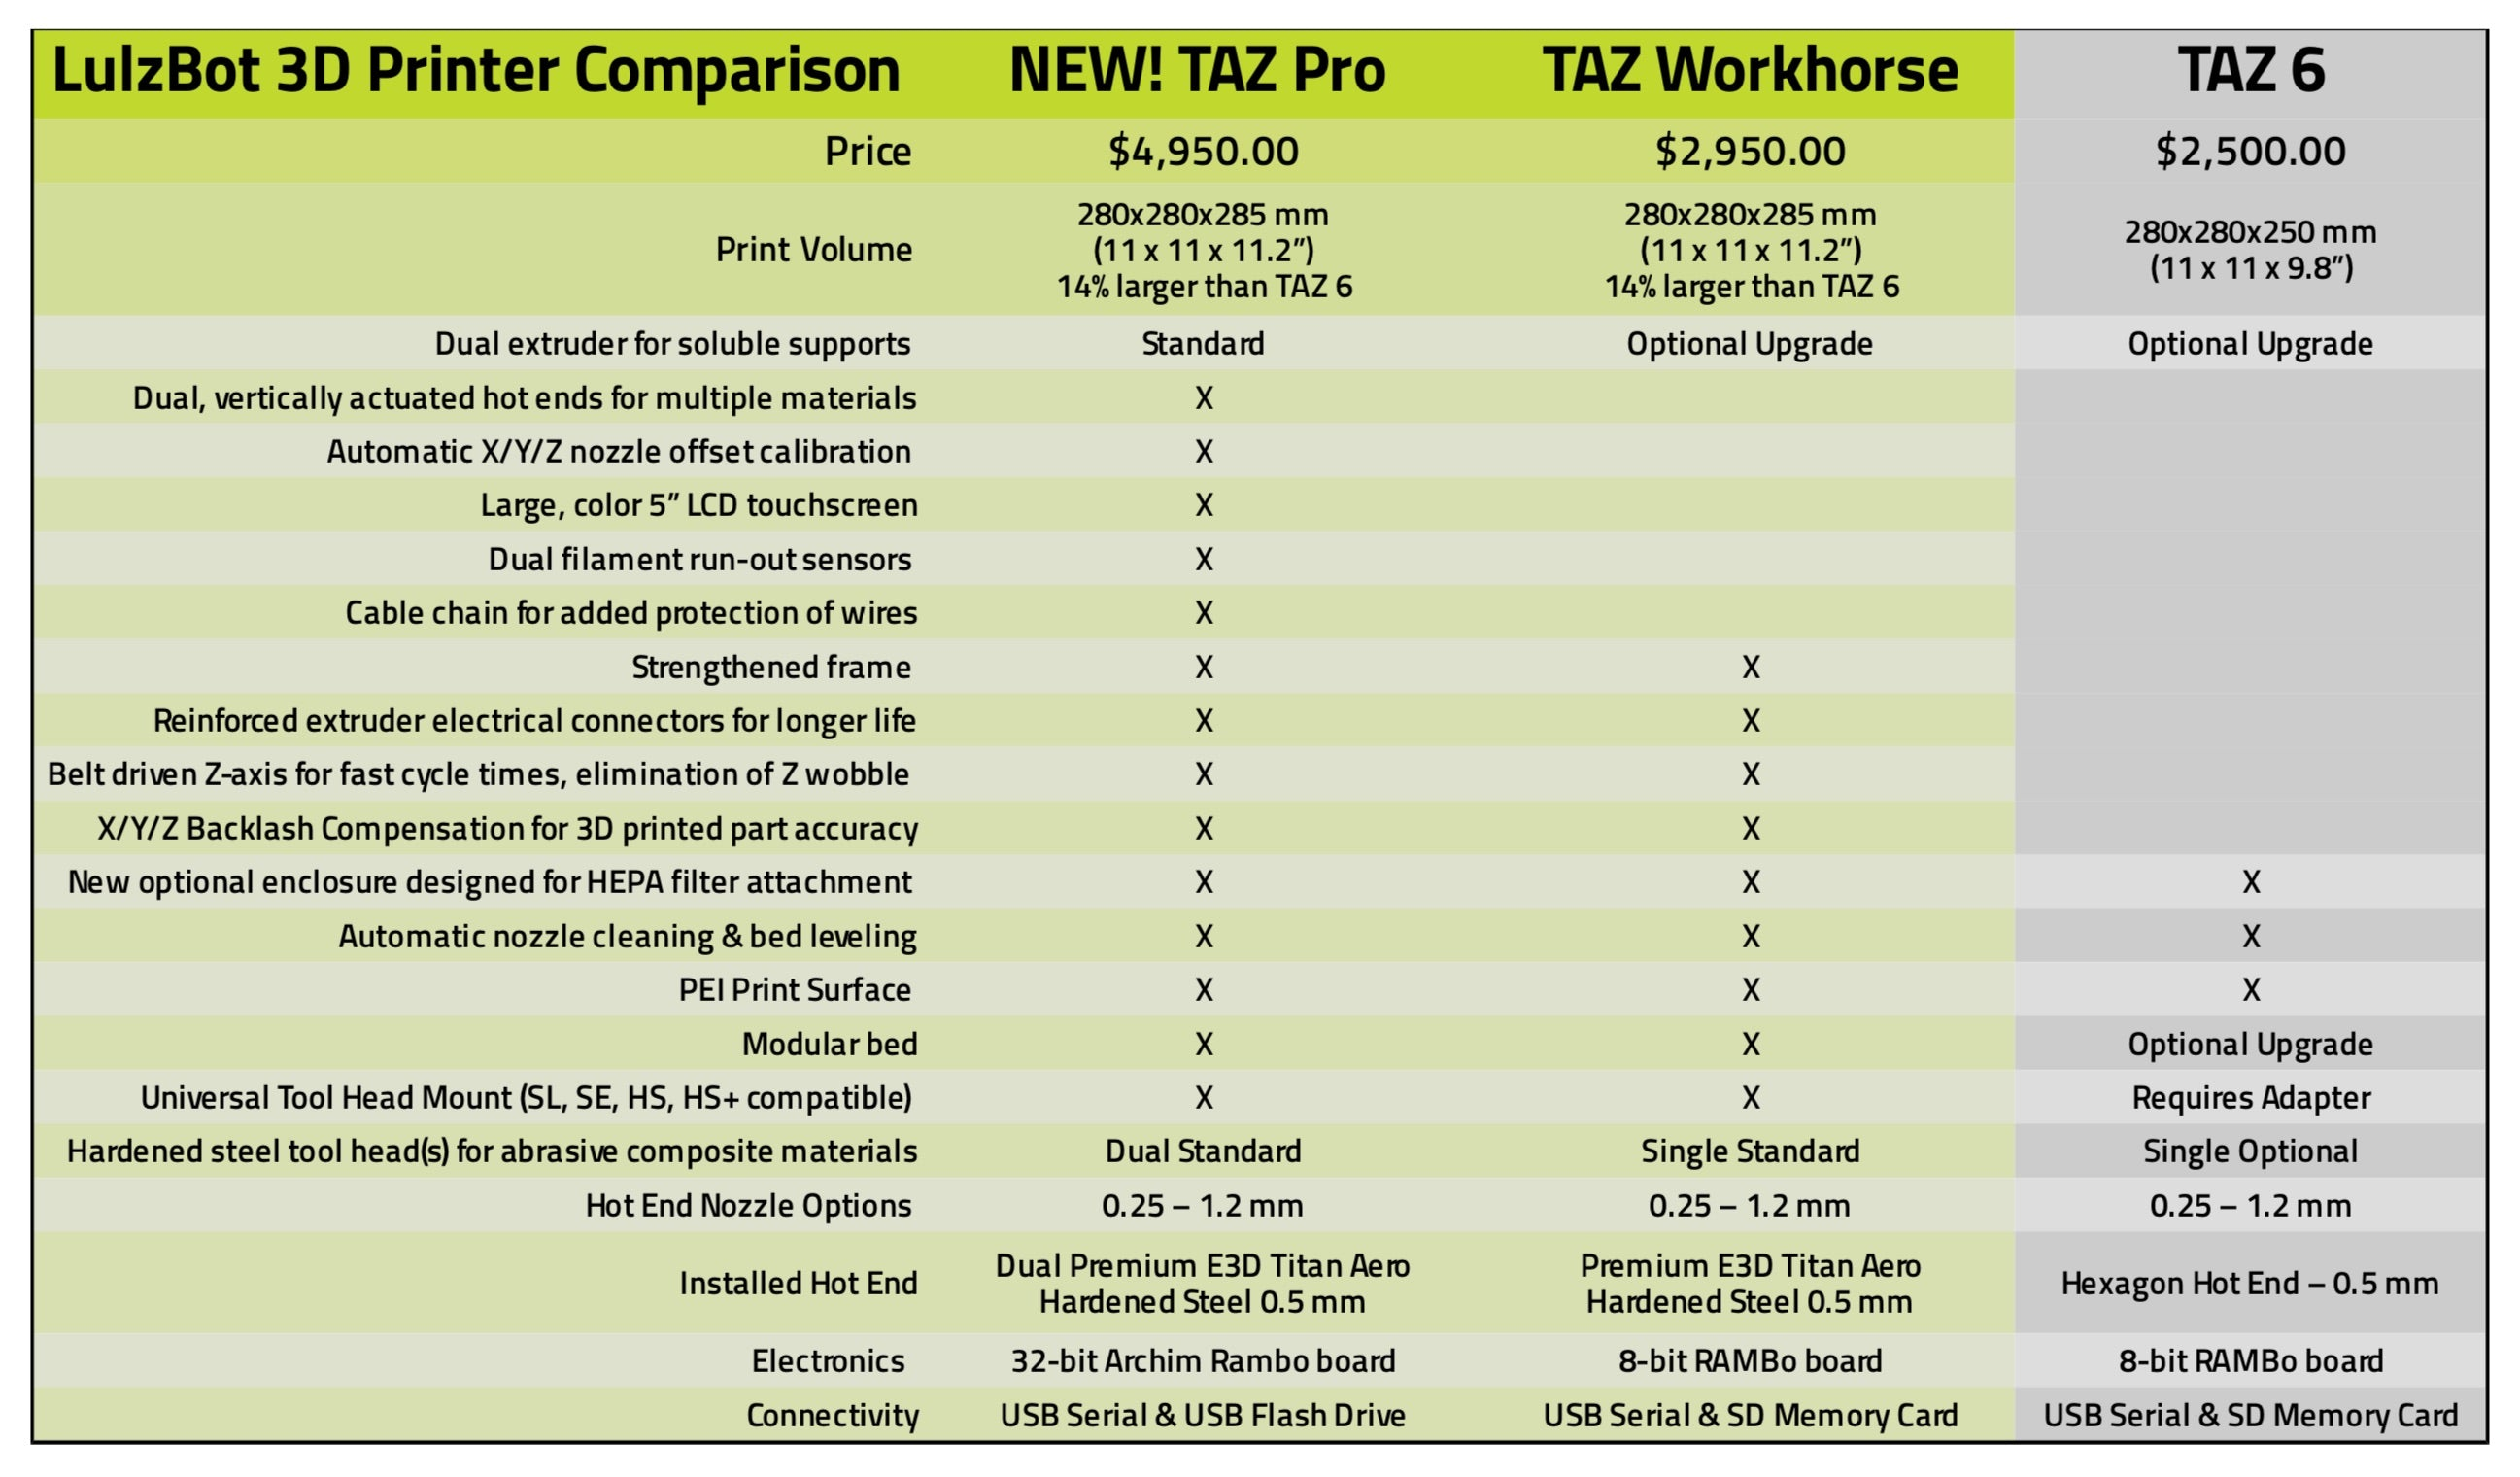 LulzBot 3D Printer Comparison Matrix